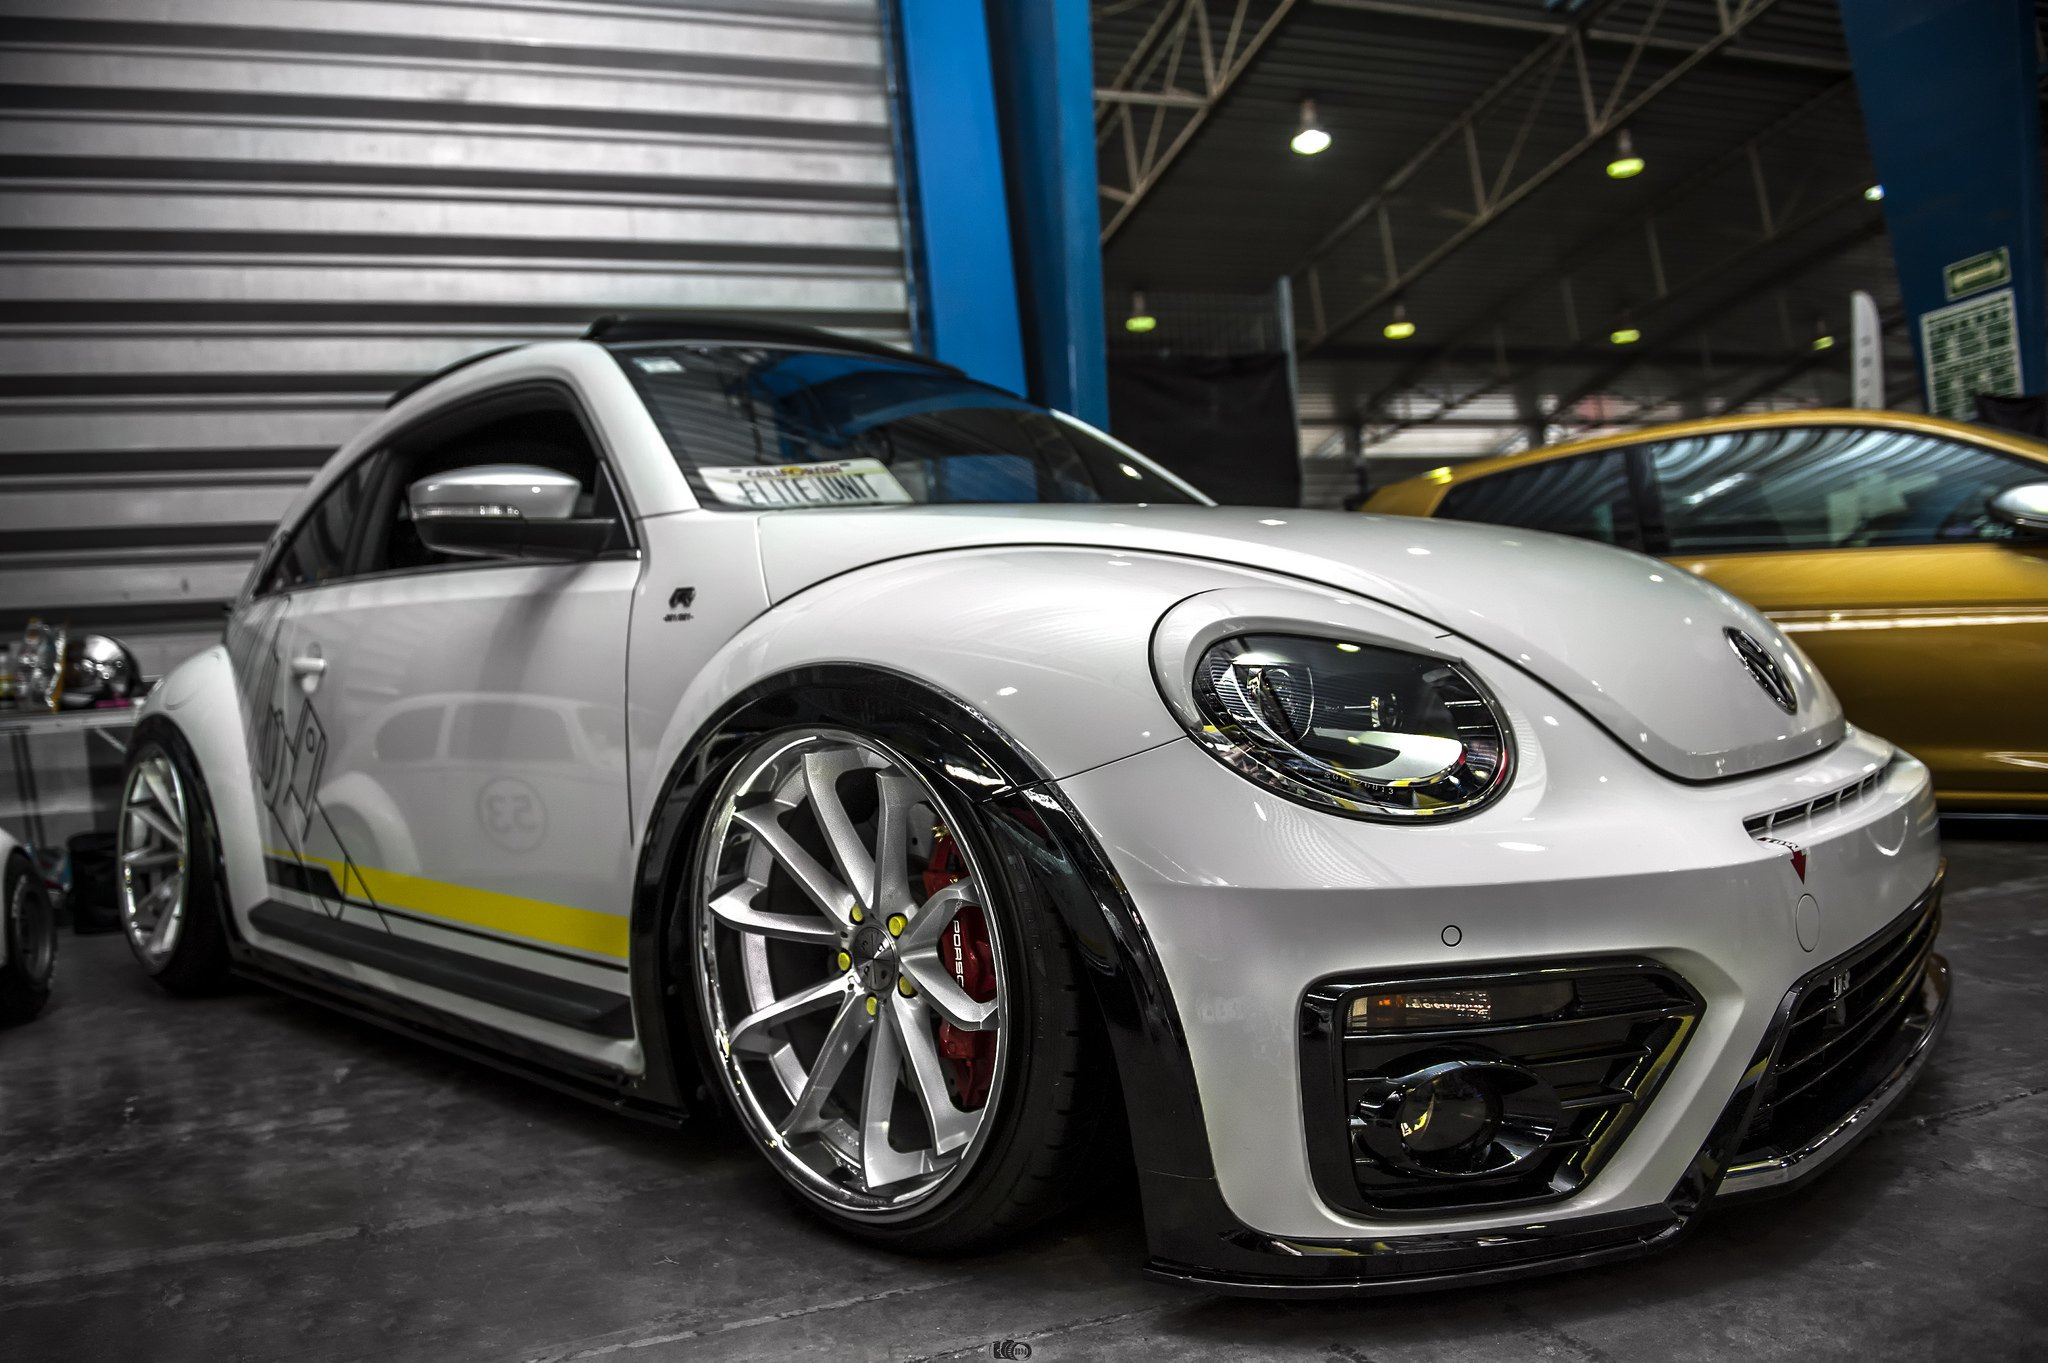 Custom 2013 Volkswagen Beetle | Images, Mods, Photos, Upgrades — CARiD.com Gallery